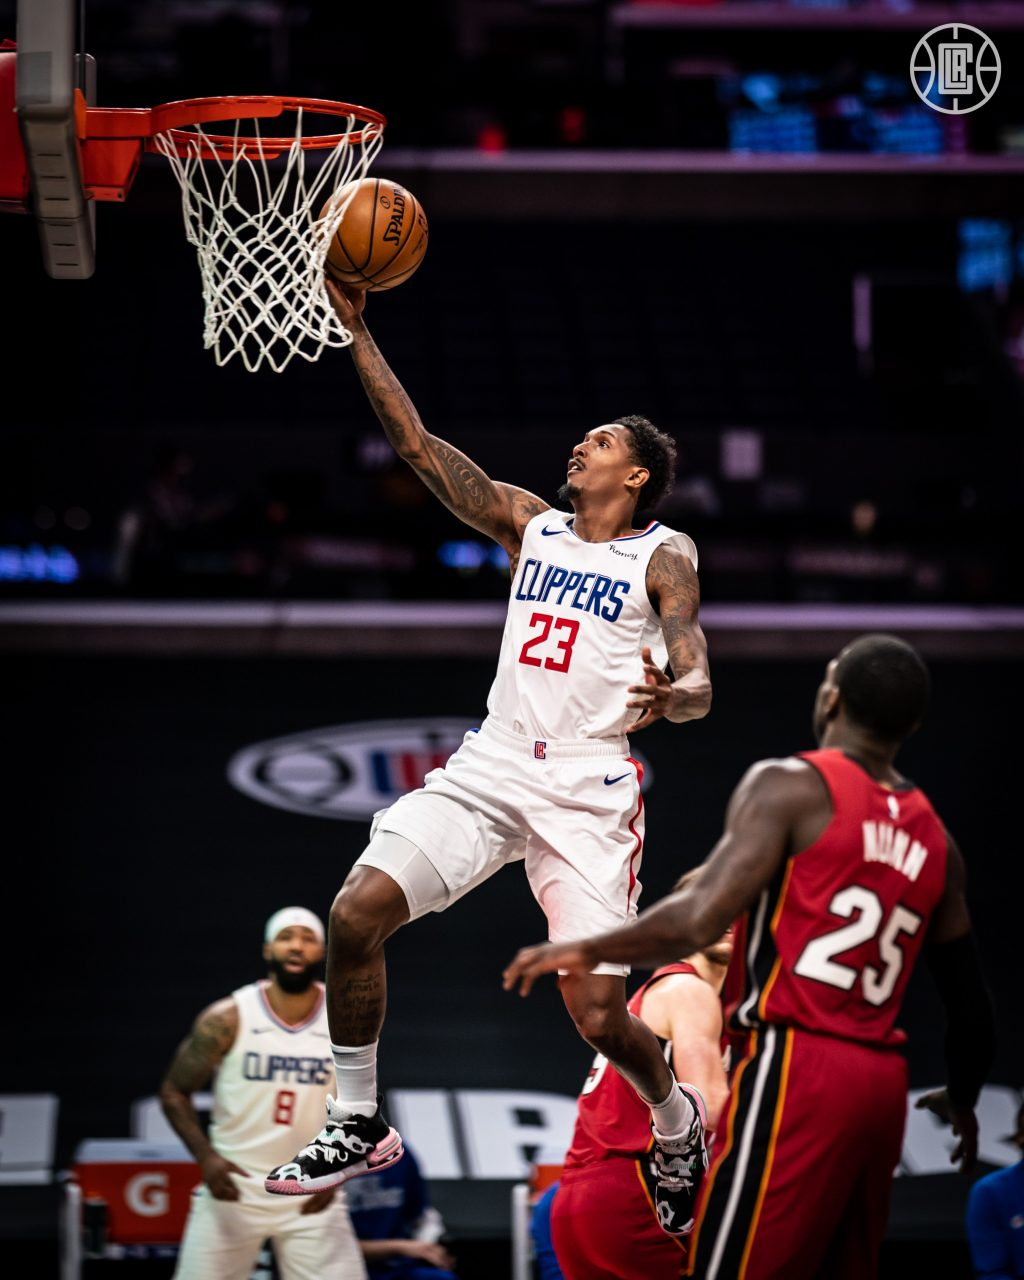 Courtside with Clippers – Week 6